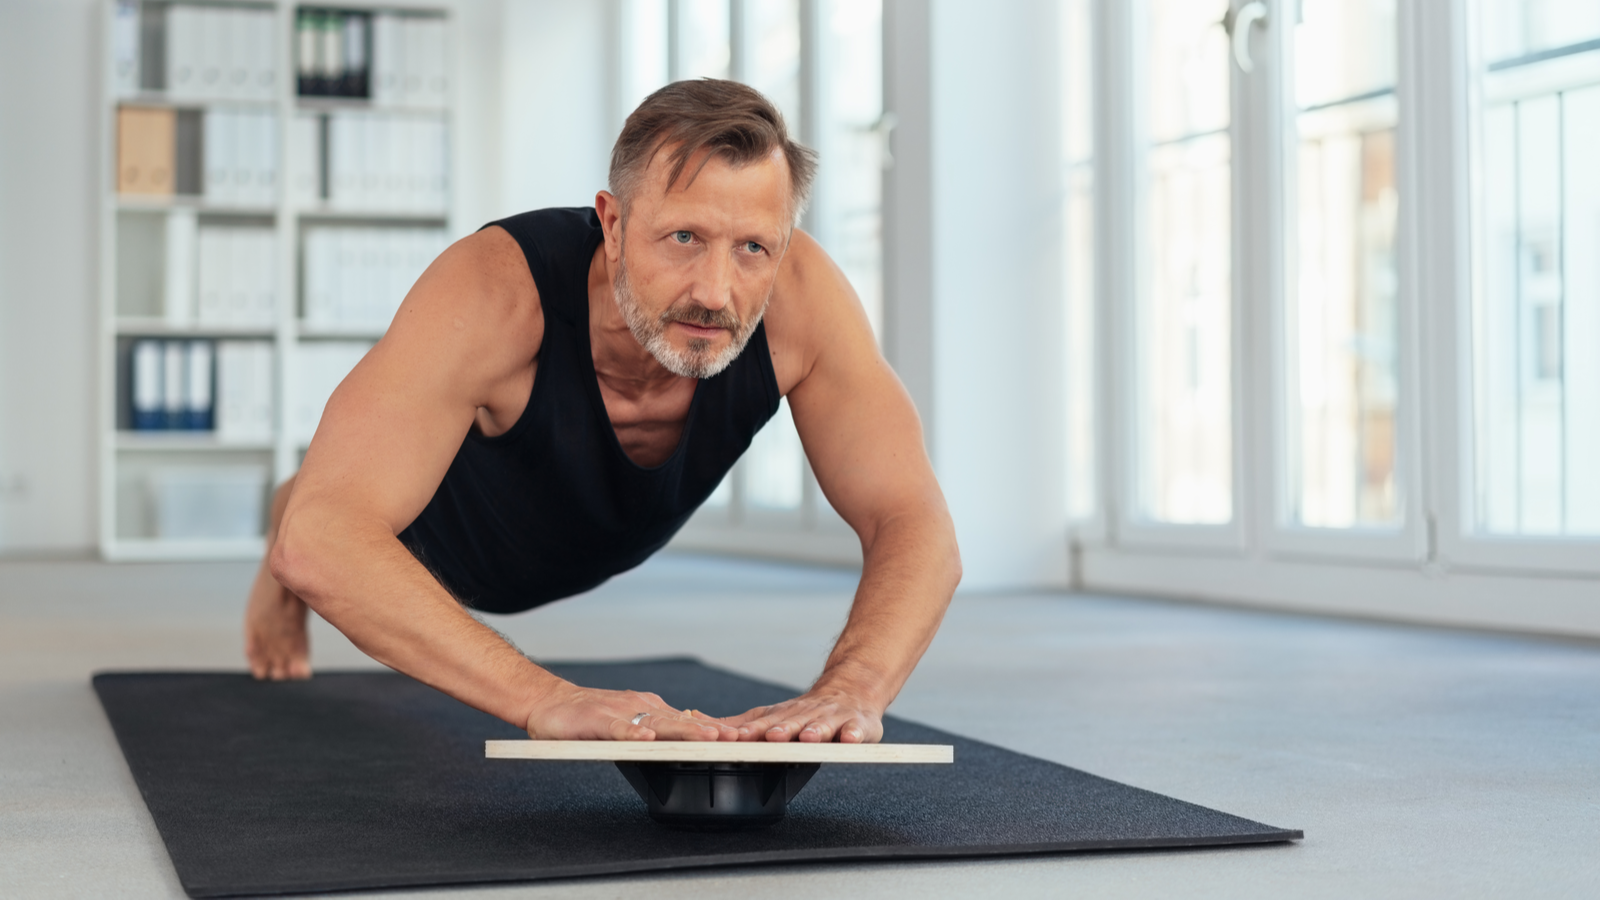 Middle-aged fit person exercising a plank variation with hands on a balance board indoors